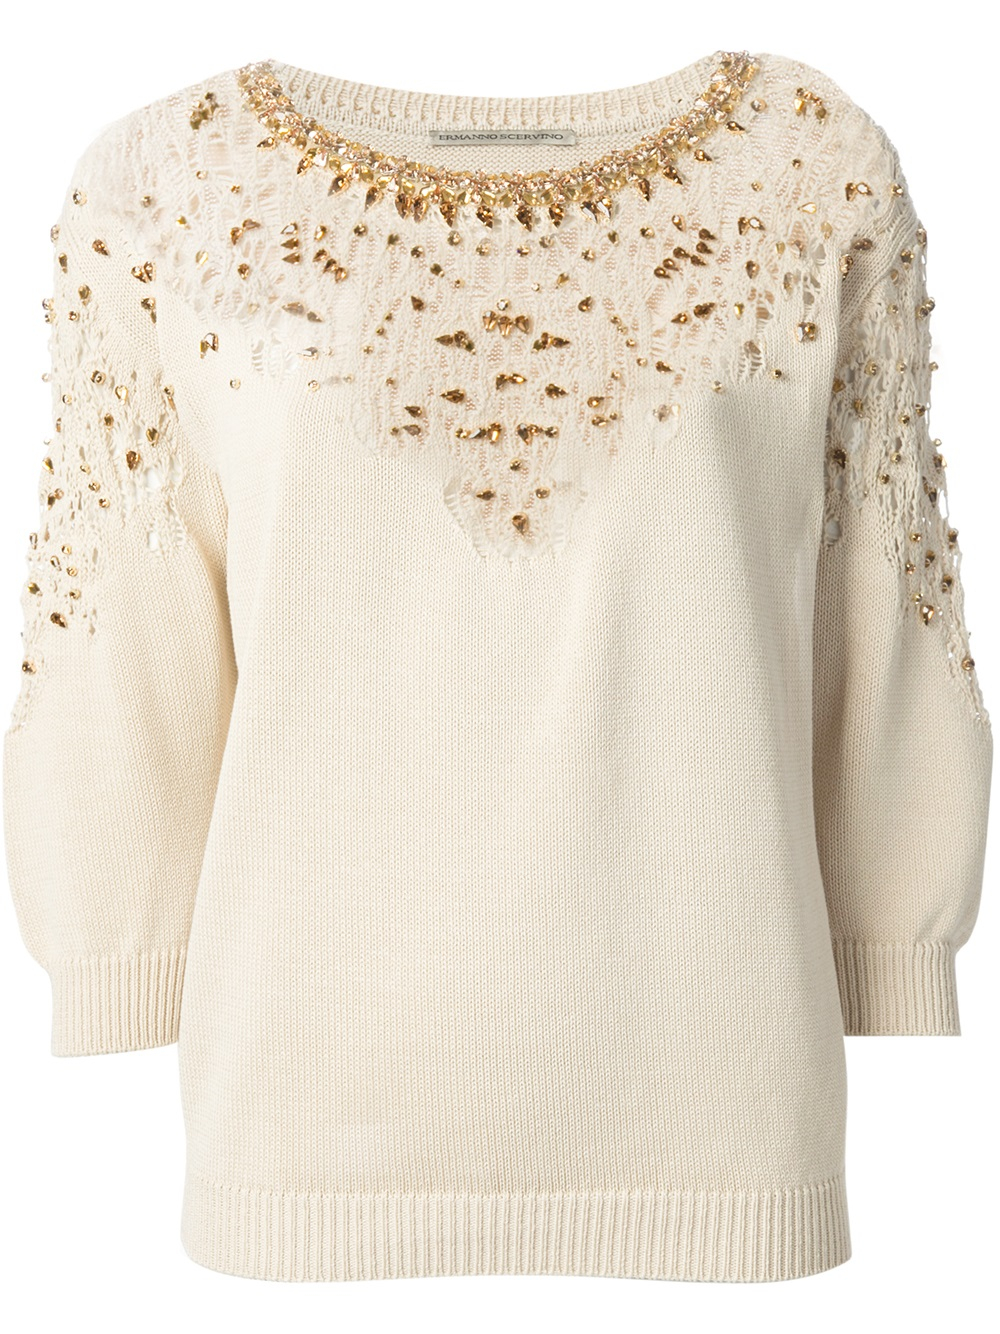 Lyst Ermanno Scervino Jewel Embellished Knit Sweater In